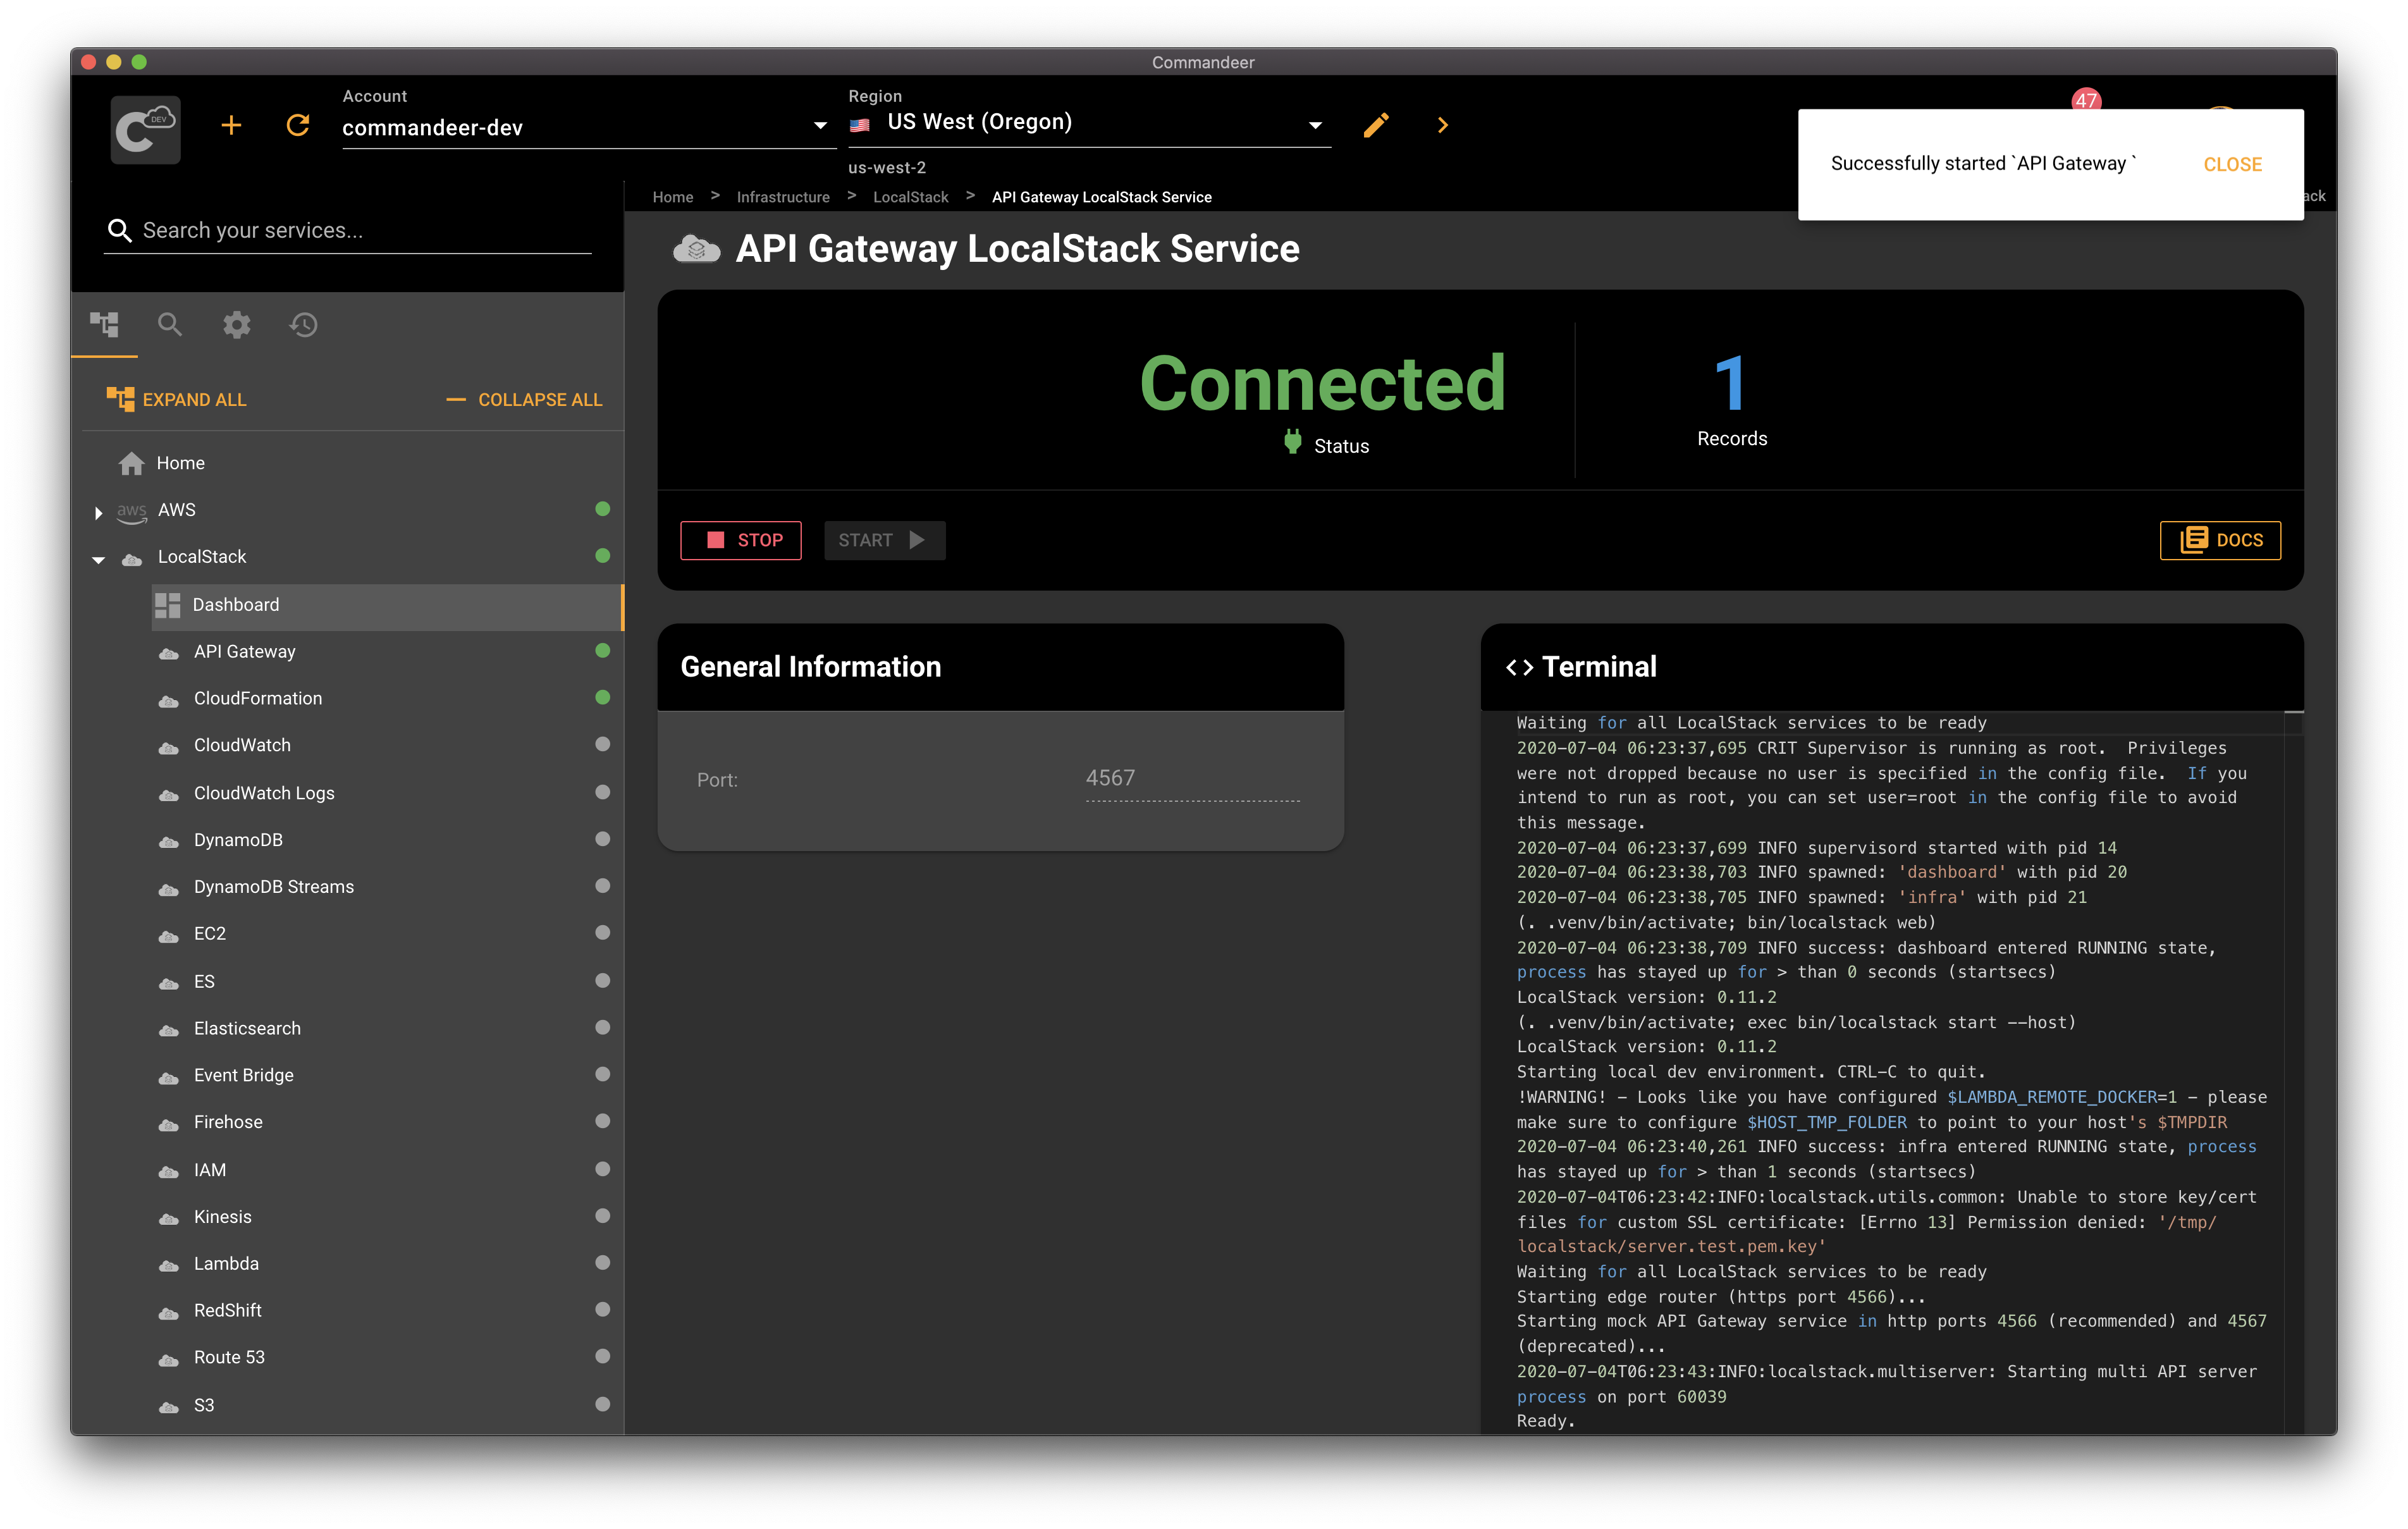 API Gateway started as an individual service in LocalStack